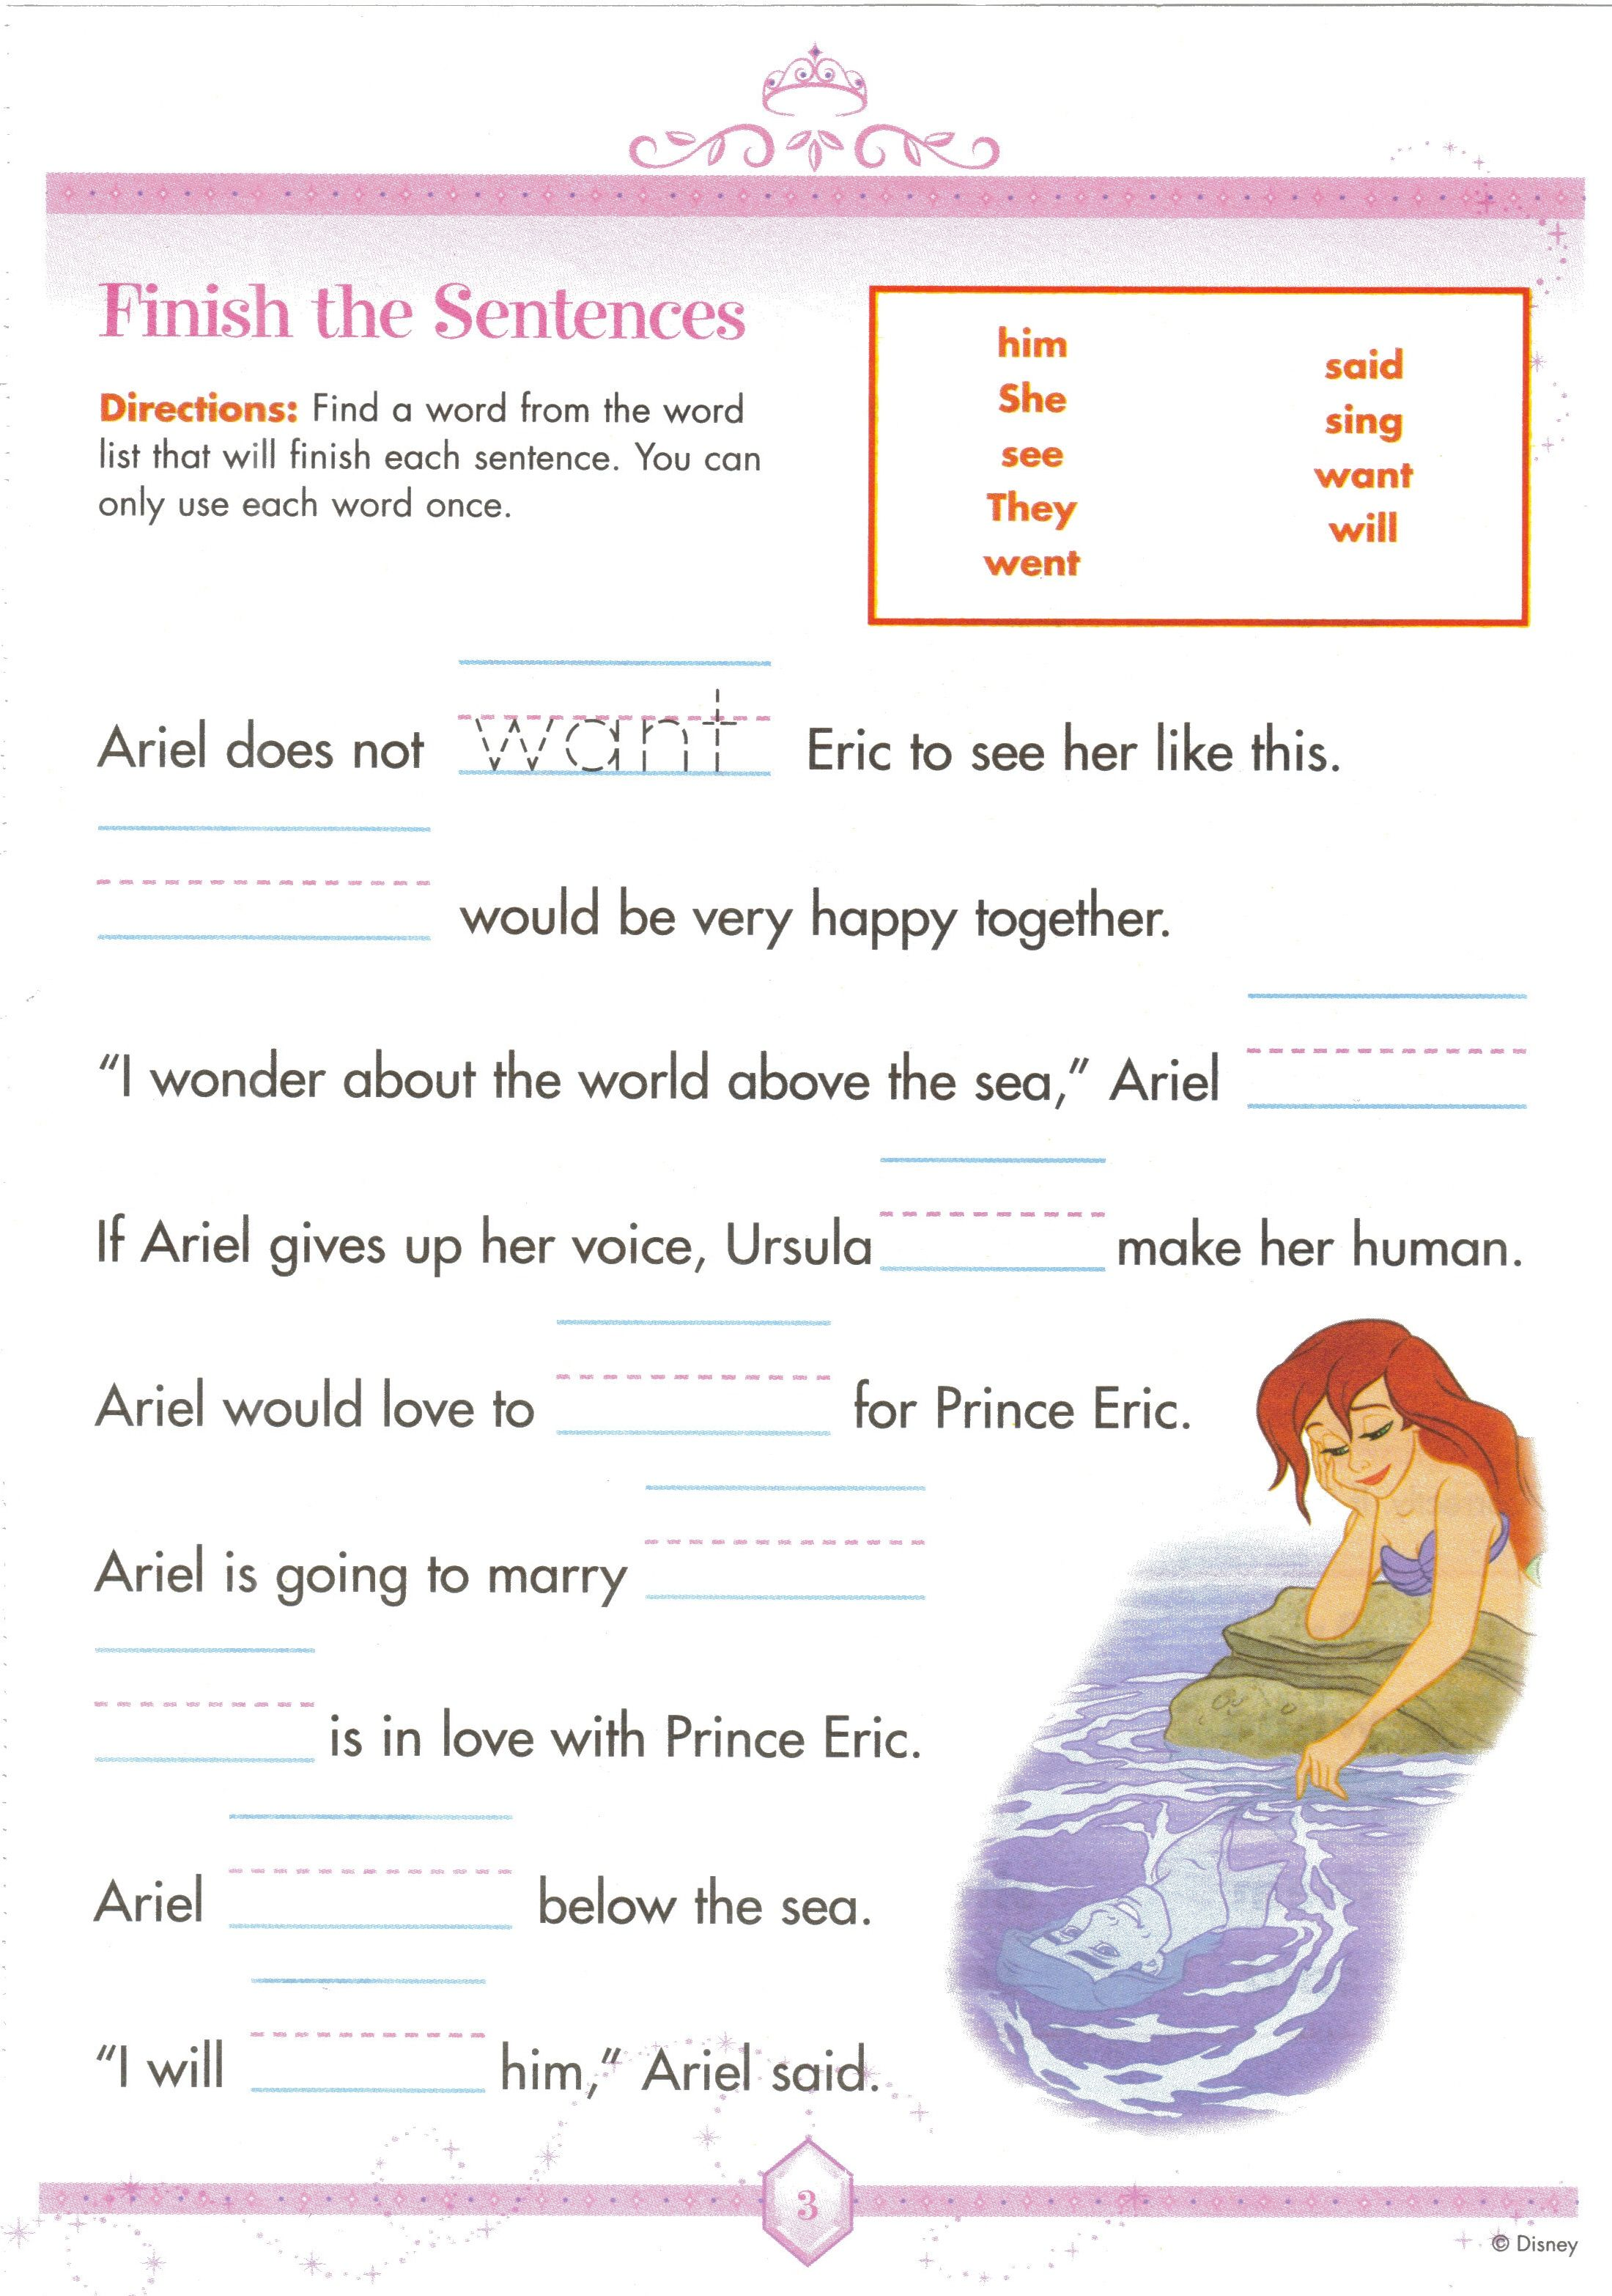 Weirdmailus  Stunning  Images About Worksheets On Pinterest  Fun Facts For Kids  With Extraordinary  Images About Worksheets On Pinterest  Fun Facts For Kids Earth Day Worksheets And Jungles With Amusing Cursive Capital Letters Worksheet Also Th Worksheets For First Grade In Addition Th Grade Percent Worksheets And Science Worksheets For Grade  As Well As Fractions For Beginners Worksheets Additionally Mathisfun Worksheets From Pinterestcom With Weirdmailus  Extraordinary  Images About Worksheets On Pinterest  Fun Facts For Kids  With Amusing  Images About Worksheets On Pinterest  Fun Facts For Kids Earth Day Worksheets And Jungles And Stunning Cursive Capital Letters Worksheet Also Th Worksheets For First Grade In Addition Th Grade Percent Worksheets From Pinterestcom